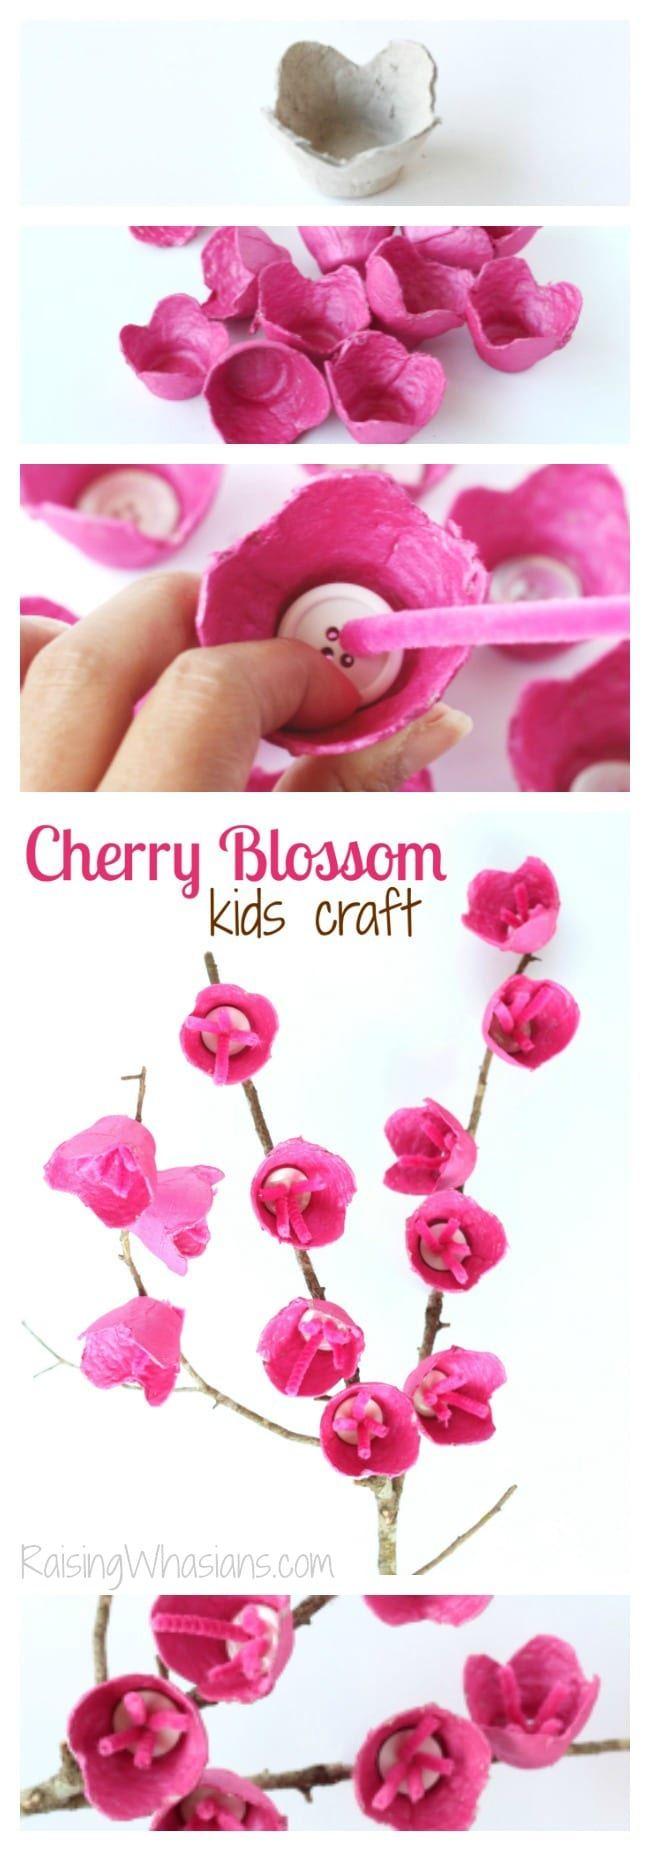 Cherry blossom craft pinterest